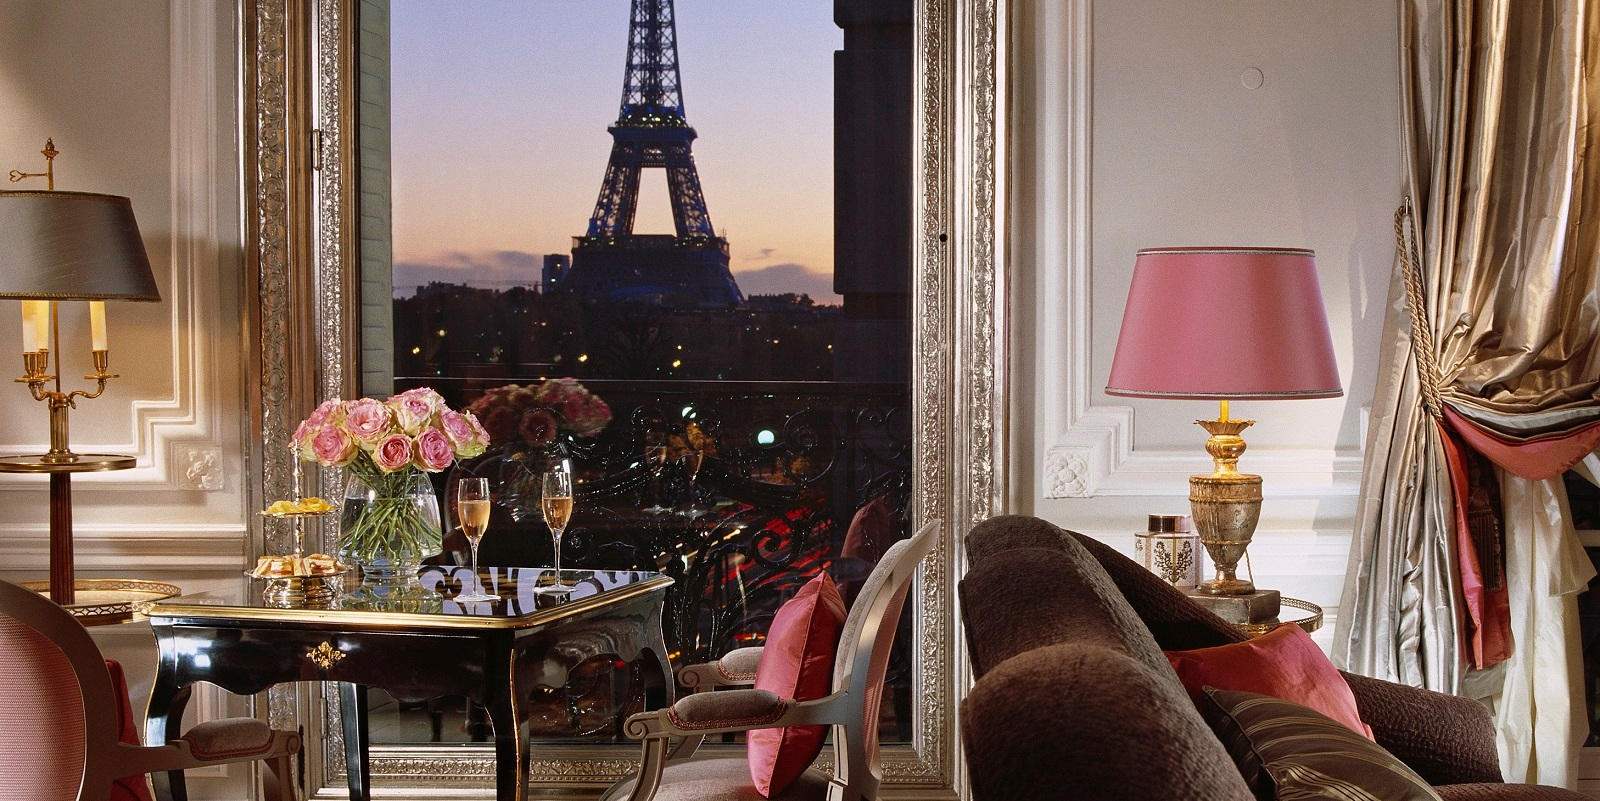 Top 3 Worthy Hotels To Stay In During Paris Design Week 6 paris design week Top 3 Worthy Hotels To Stay In During Paris Design Week Top 3 Worthy Hotels To Stay In During Paris Design Week 6